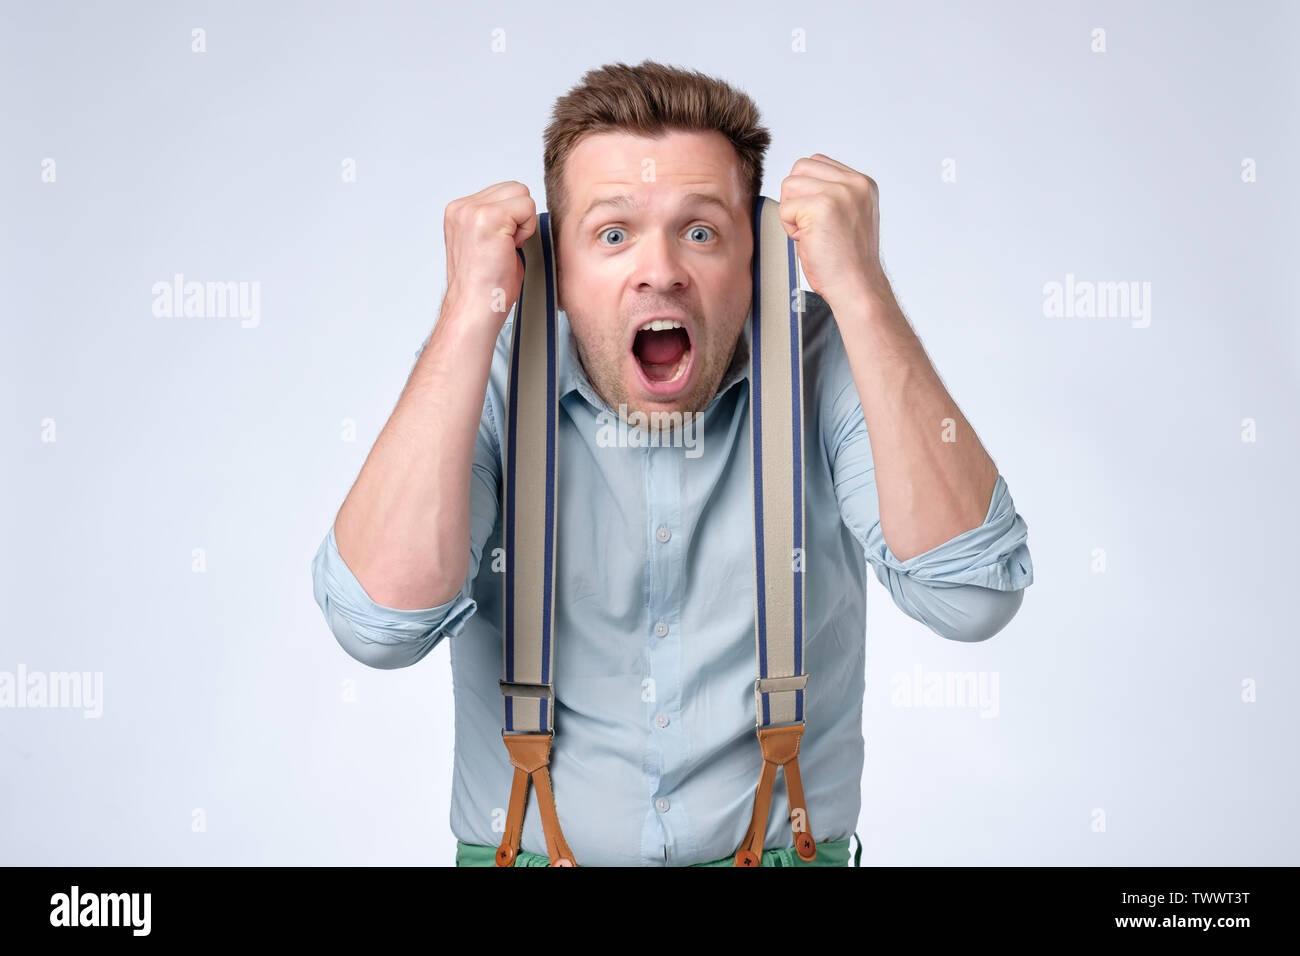 Shocked face of young european man in blue shirt and suspenders - Stock Image